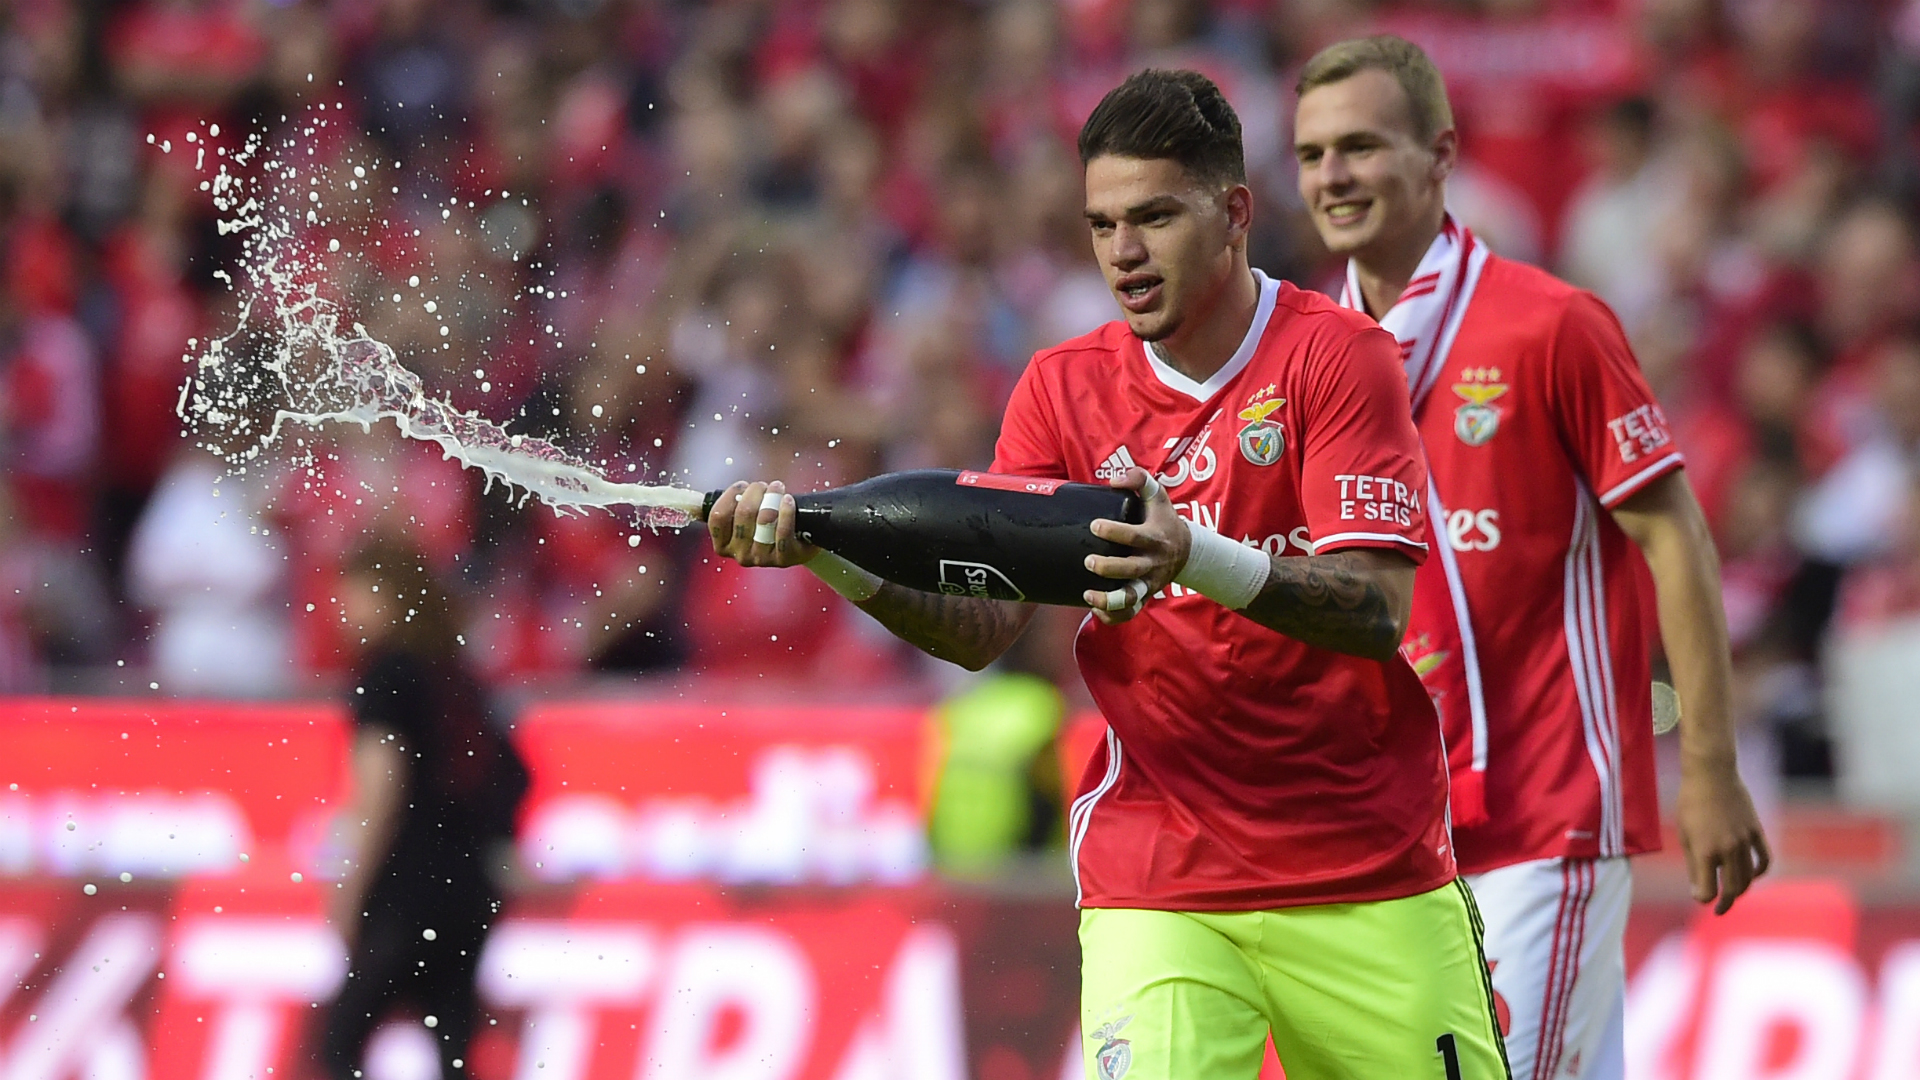 Benfica star Ederson hints at Manchester City move